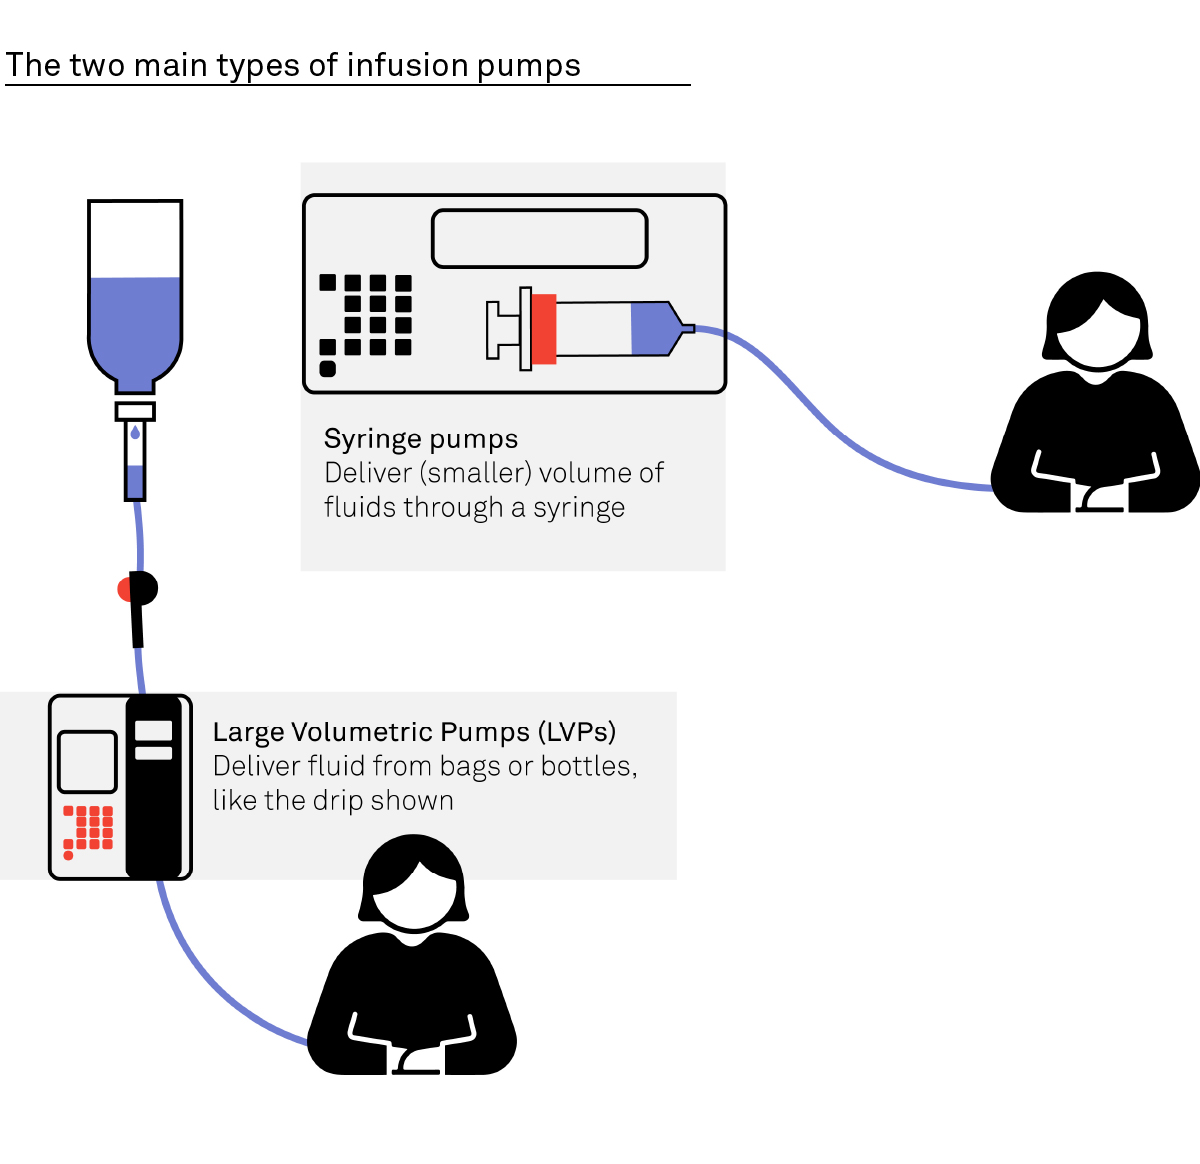 diagram of the different types of infusion pumps including syringe and large volumetric